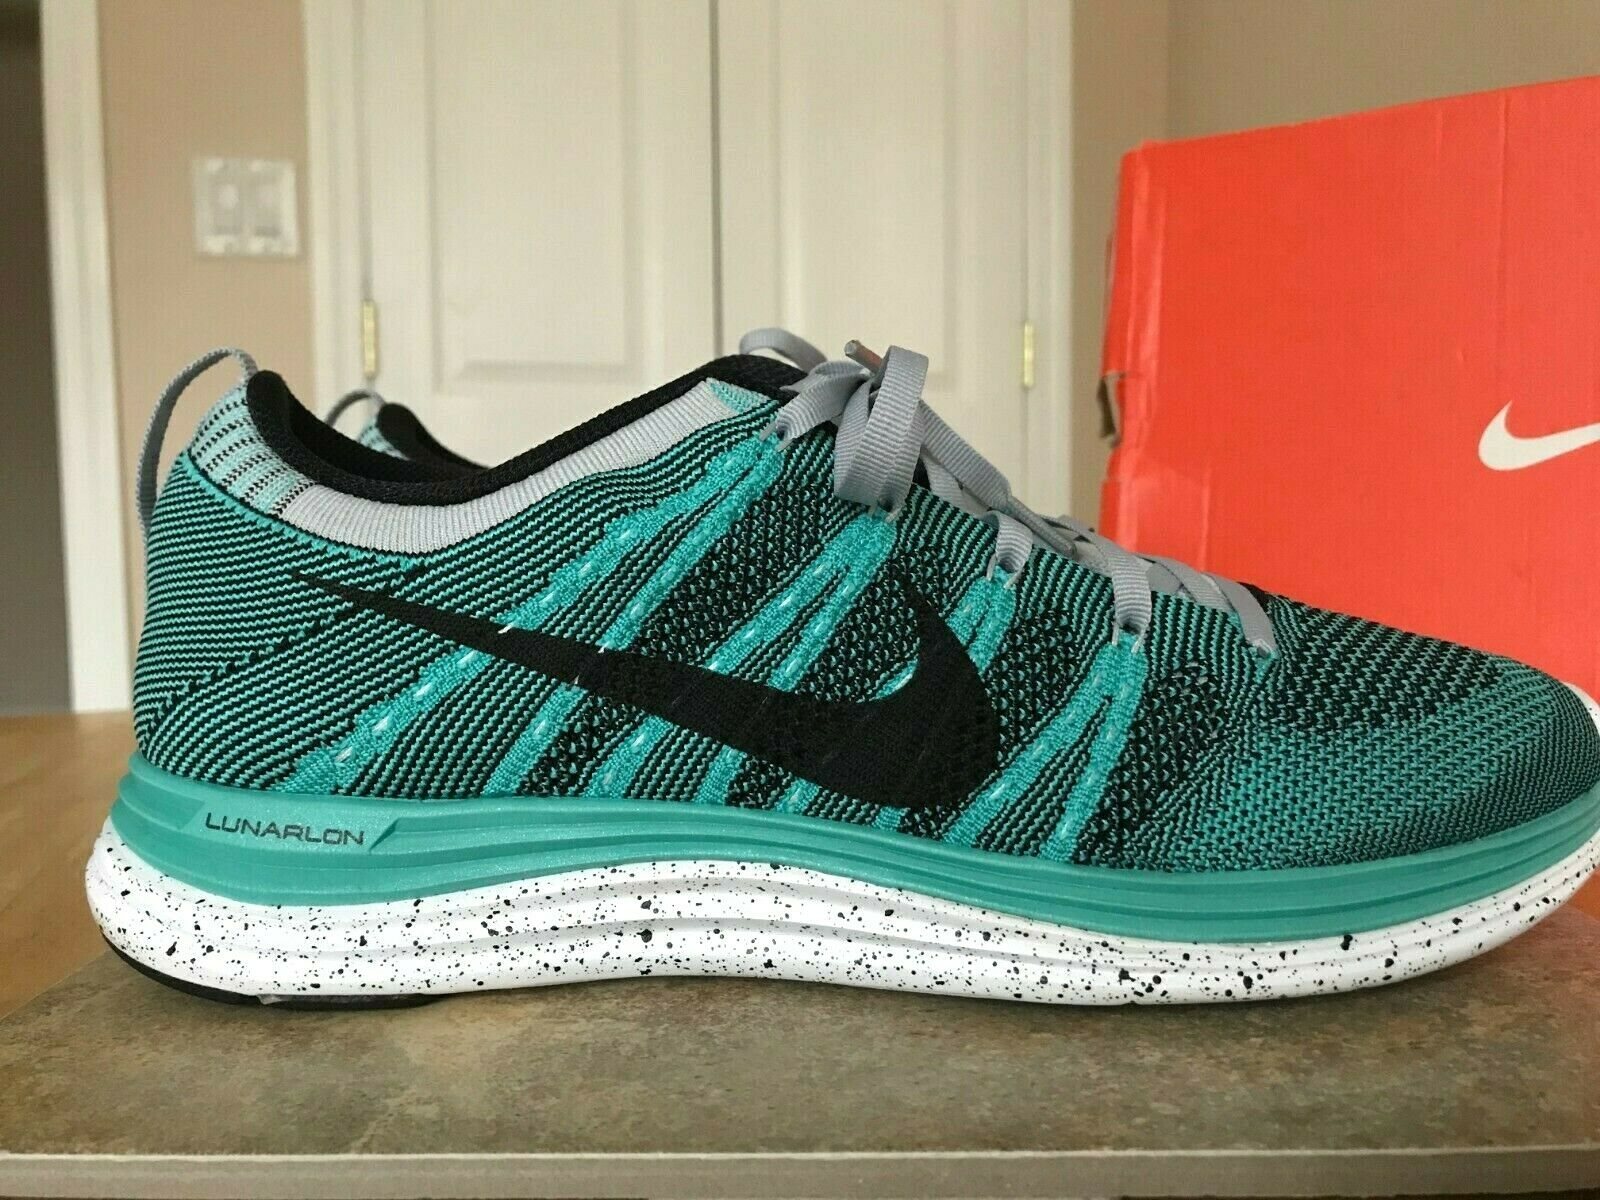 NIKE 2012 FLYKNIT ONE + MEN'S SHOES 554887 301 SIZE 10 TURQUOISE WOLF GREY BLACK